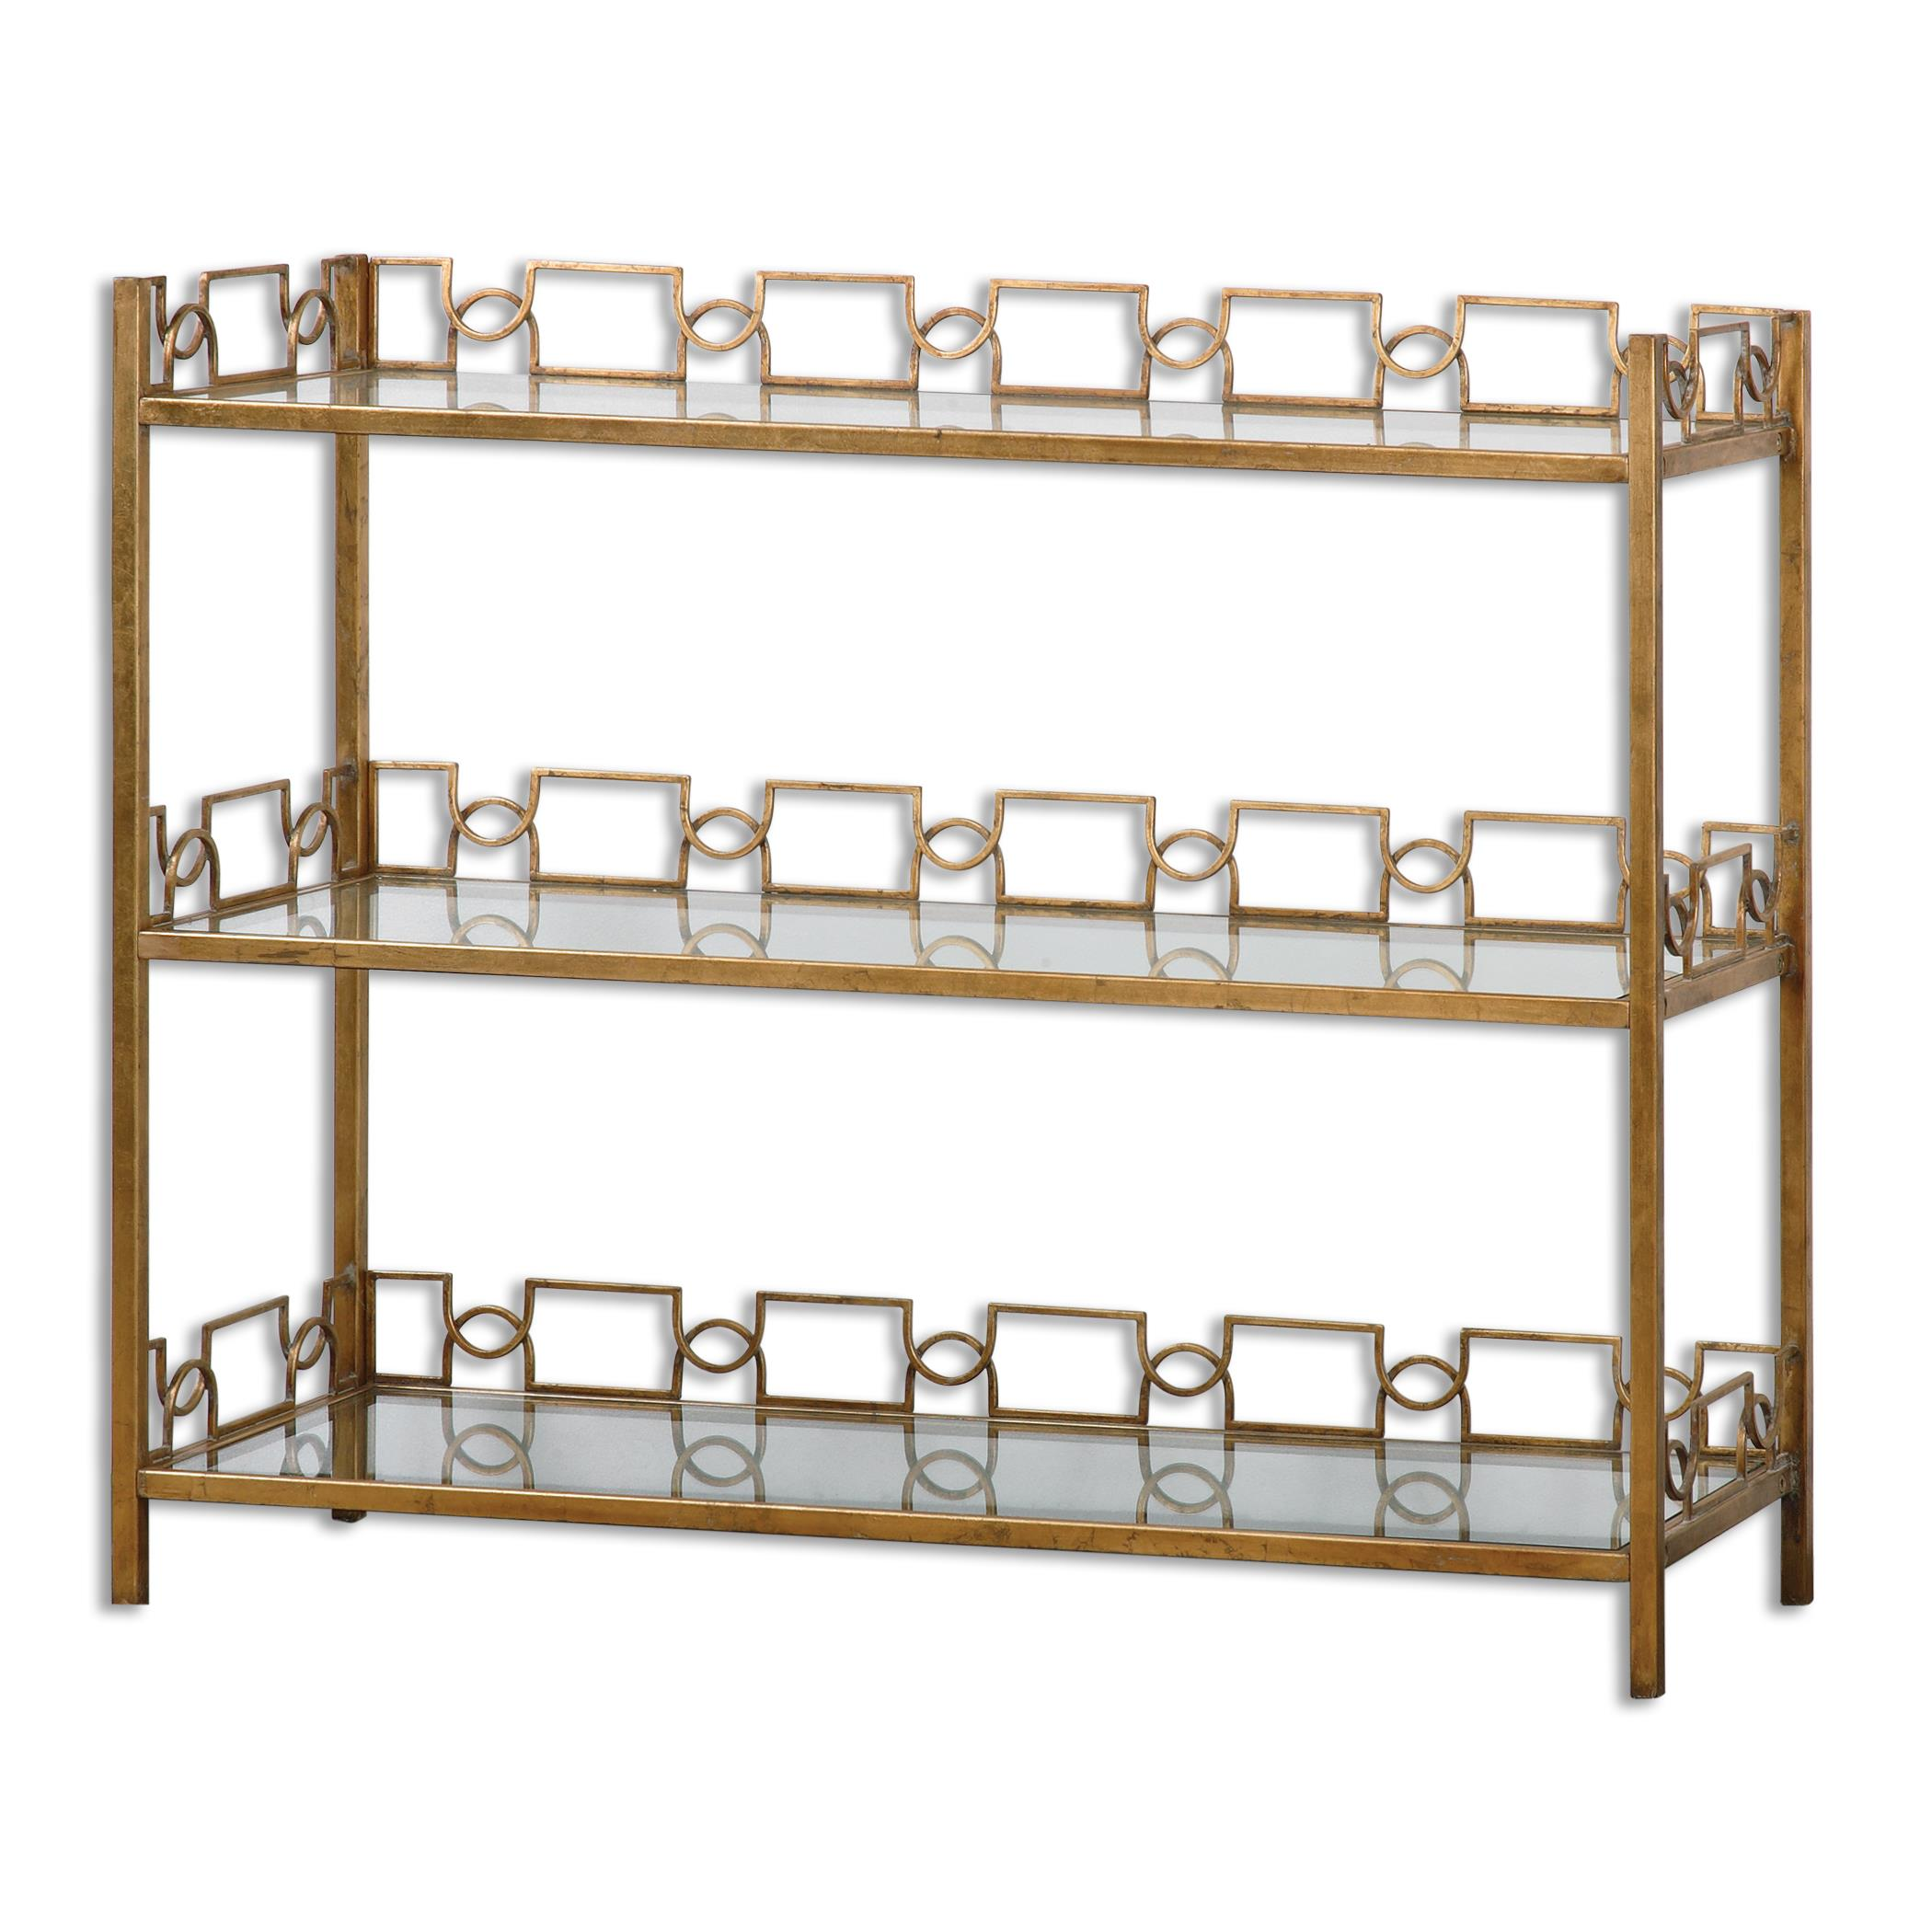 Uttermost Accent Furniture Nicoline Glass Console - Item Number: 24439